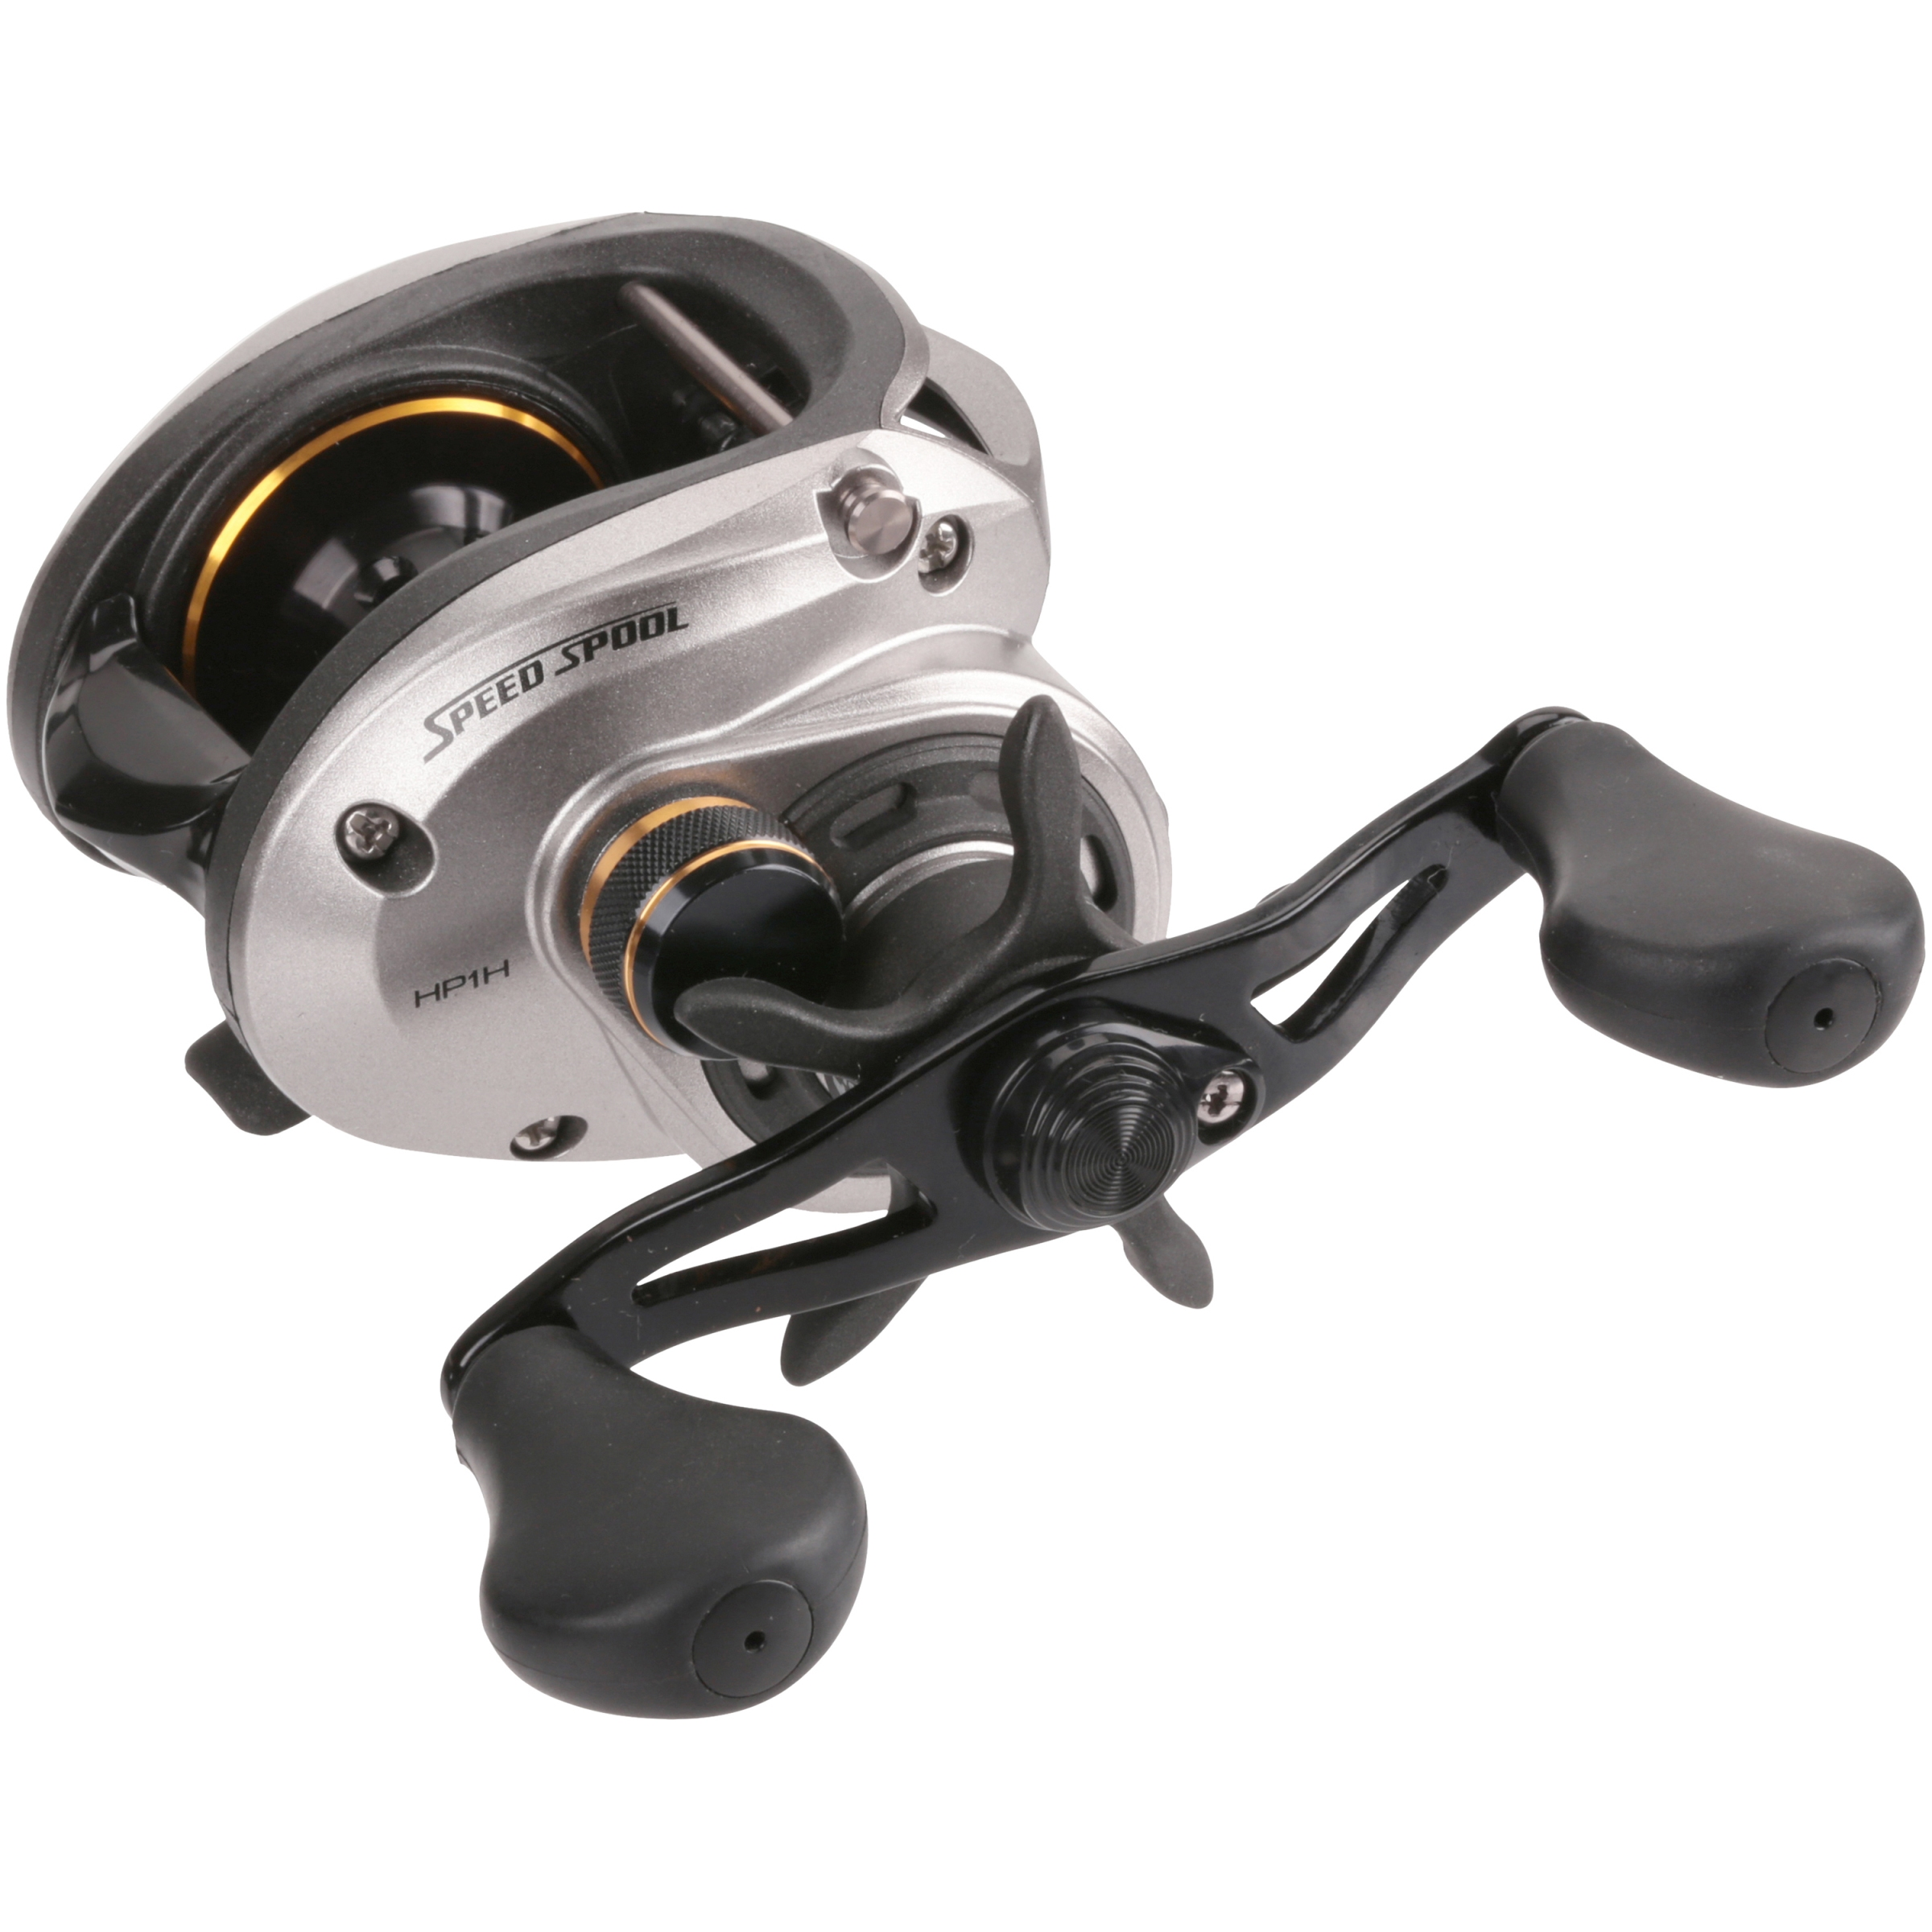 Lew's® Speed Spool® Hank Parker Reel